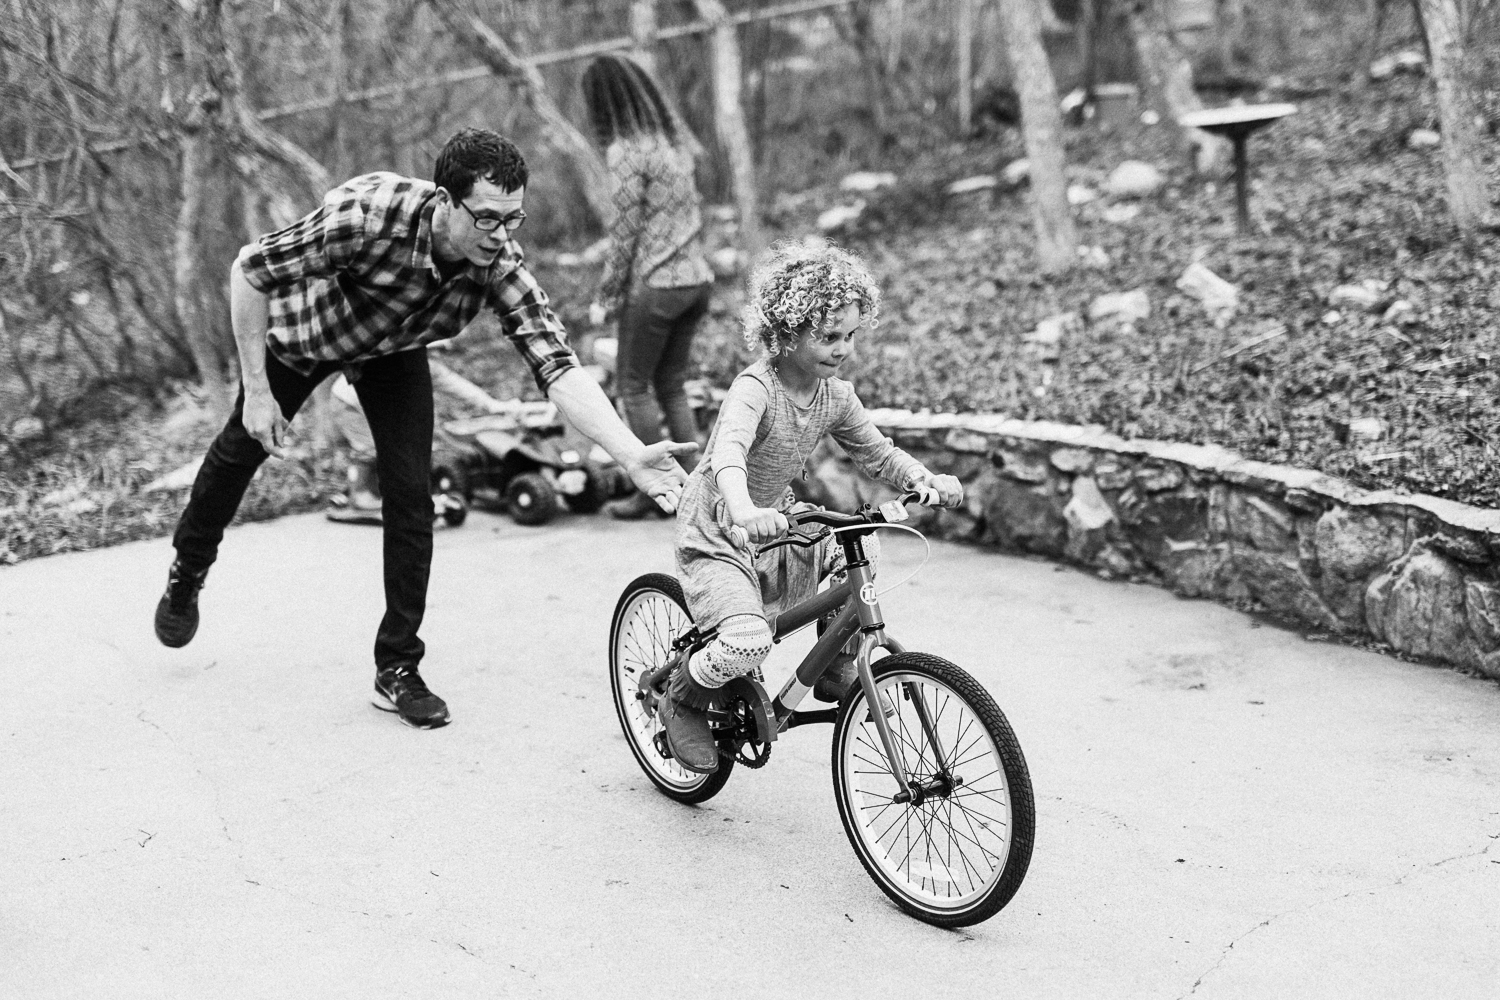 dad-helping-daughter-ride-bike-on-back-porch-at-home-lifestyle-photography-session-with-jen-fairchild-millcreek-utah